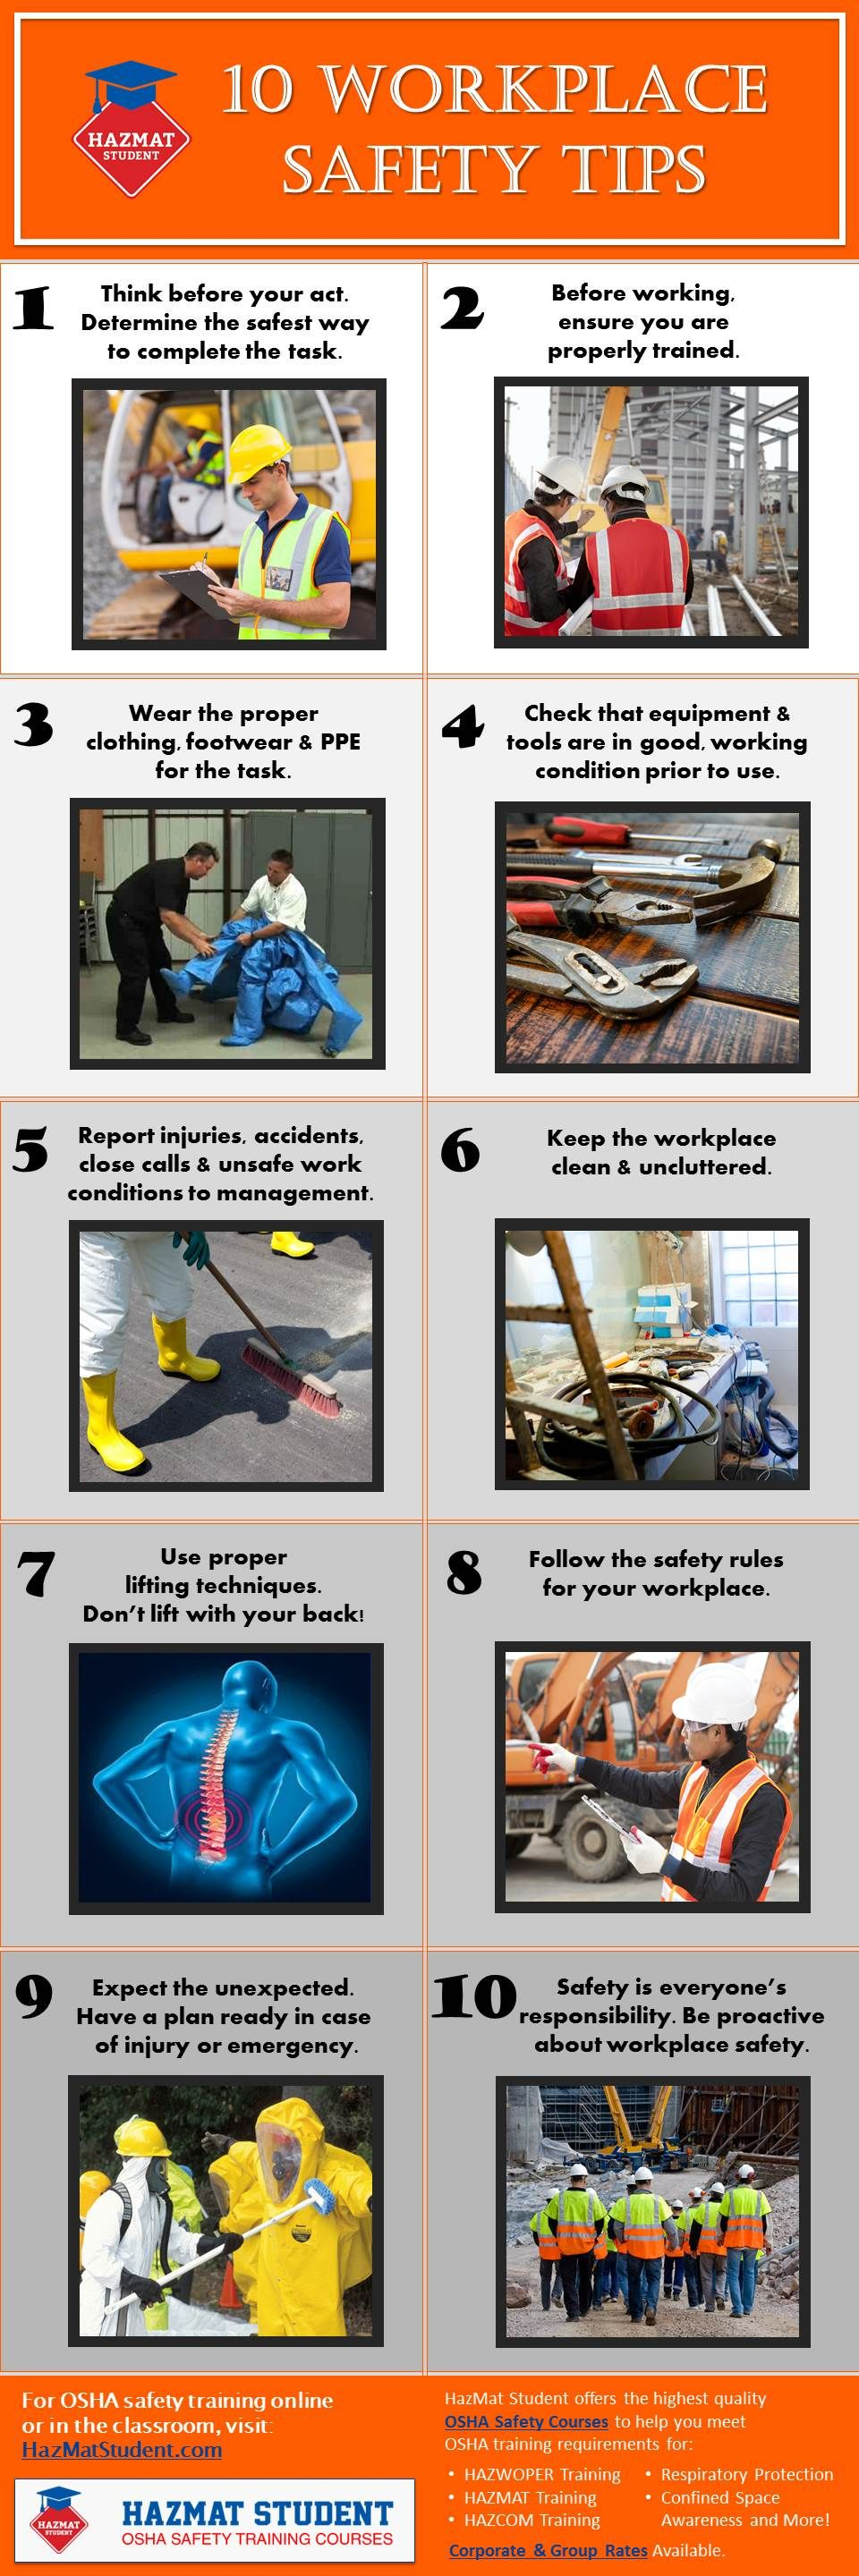 Top 10 workplace safety tips to help prevent injuries and accidents top 10 workplace safety tips to help prevent injuries and accidents on the job fandeluxe Images